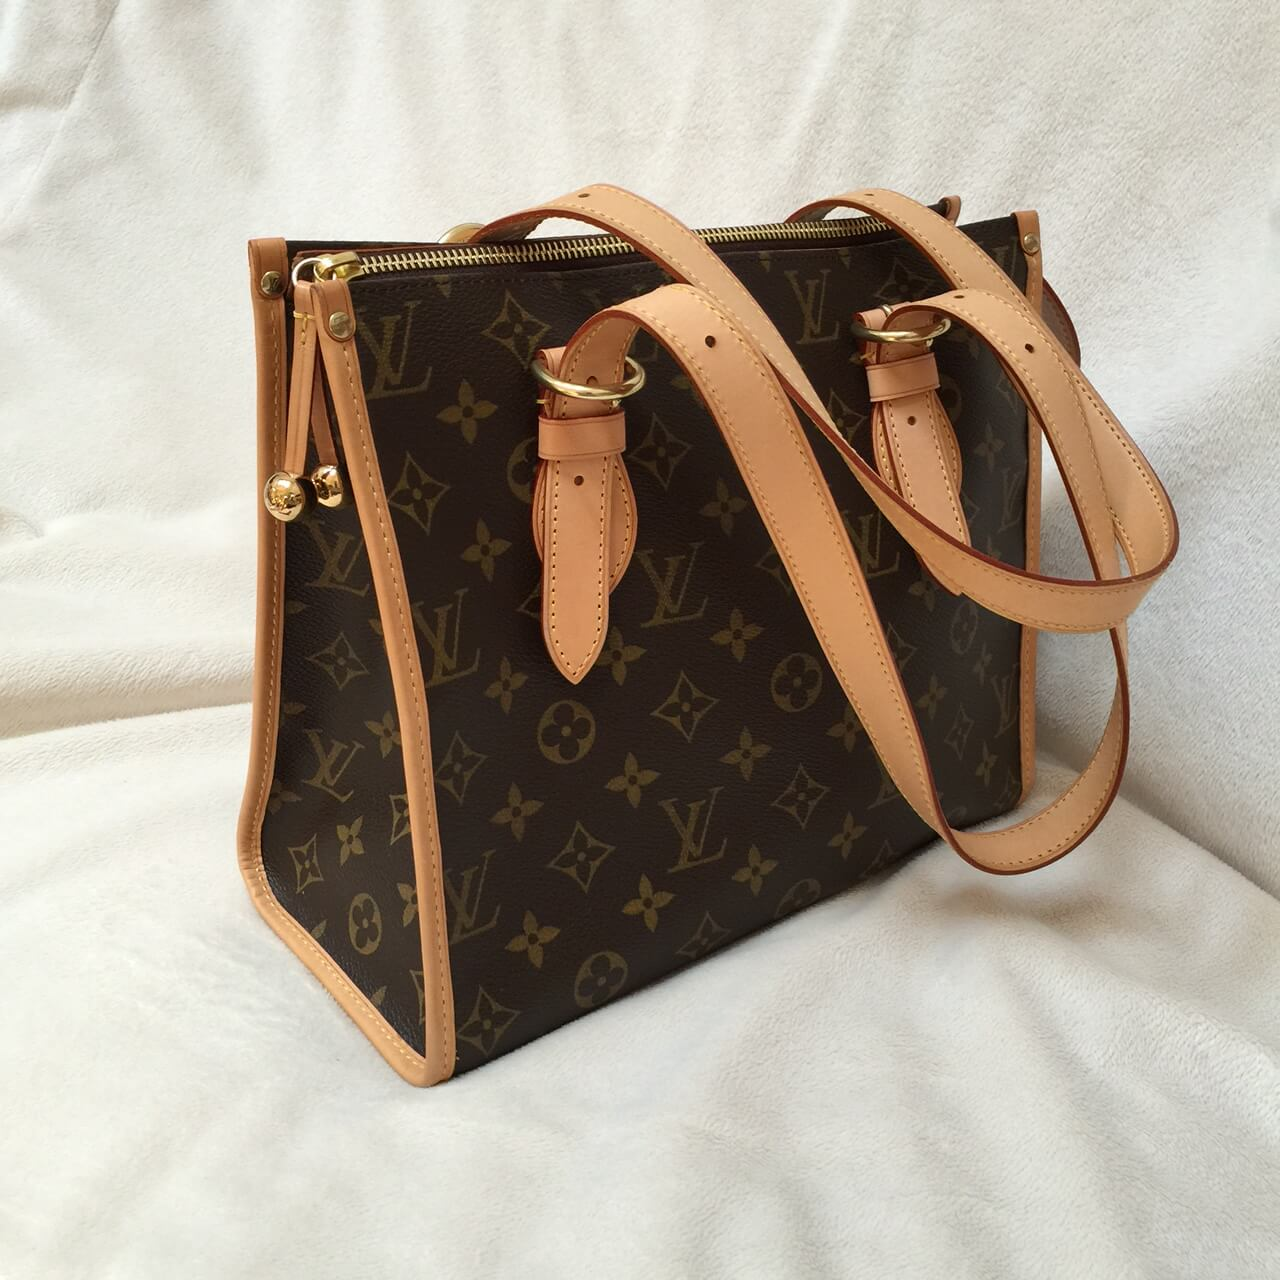 a87e26ca800f How to Repair a Damaged Louis Vuitton Bag